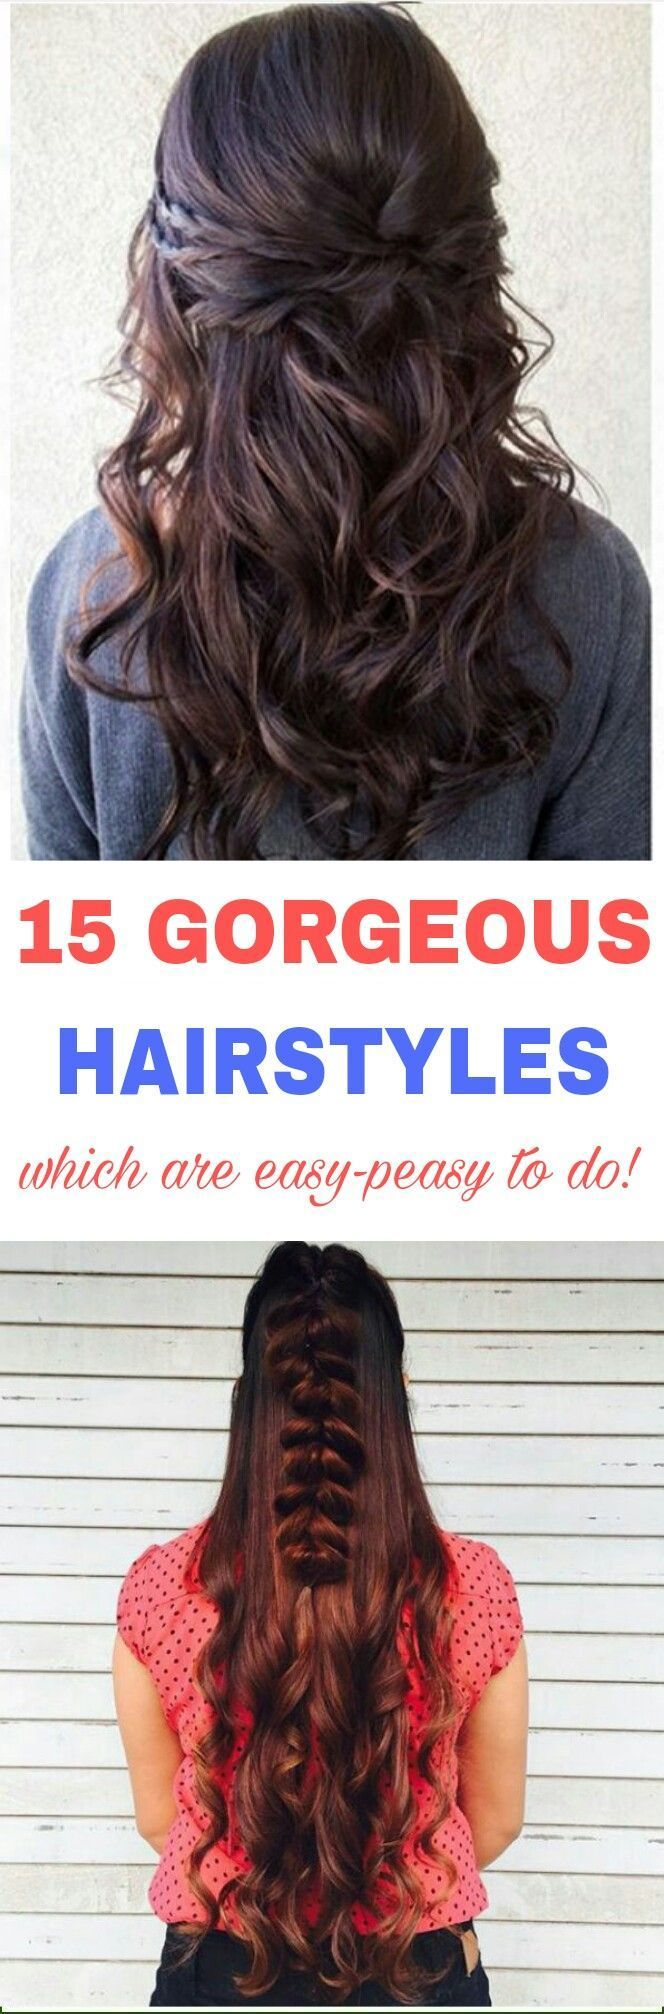 15 Easy  Quick Hairstyles For Busy Mornings When Youre Running Late 15 Easy  Quick Hairstyles For Busy Mornings When Youre Running Late